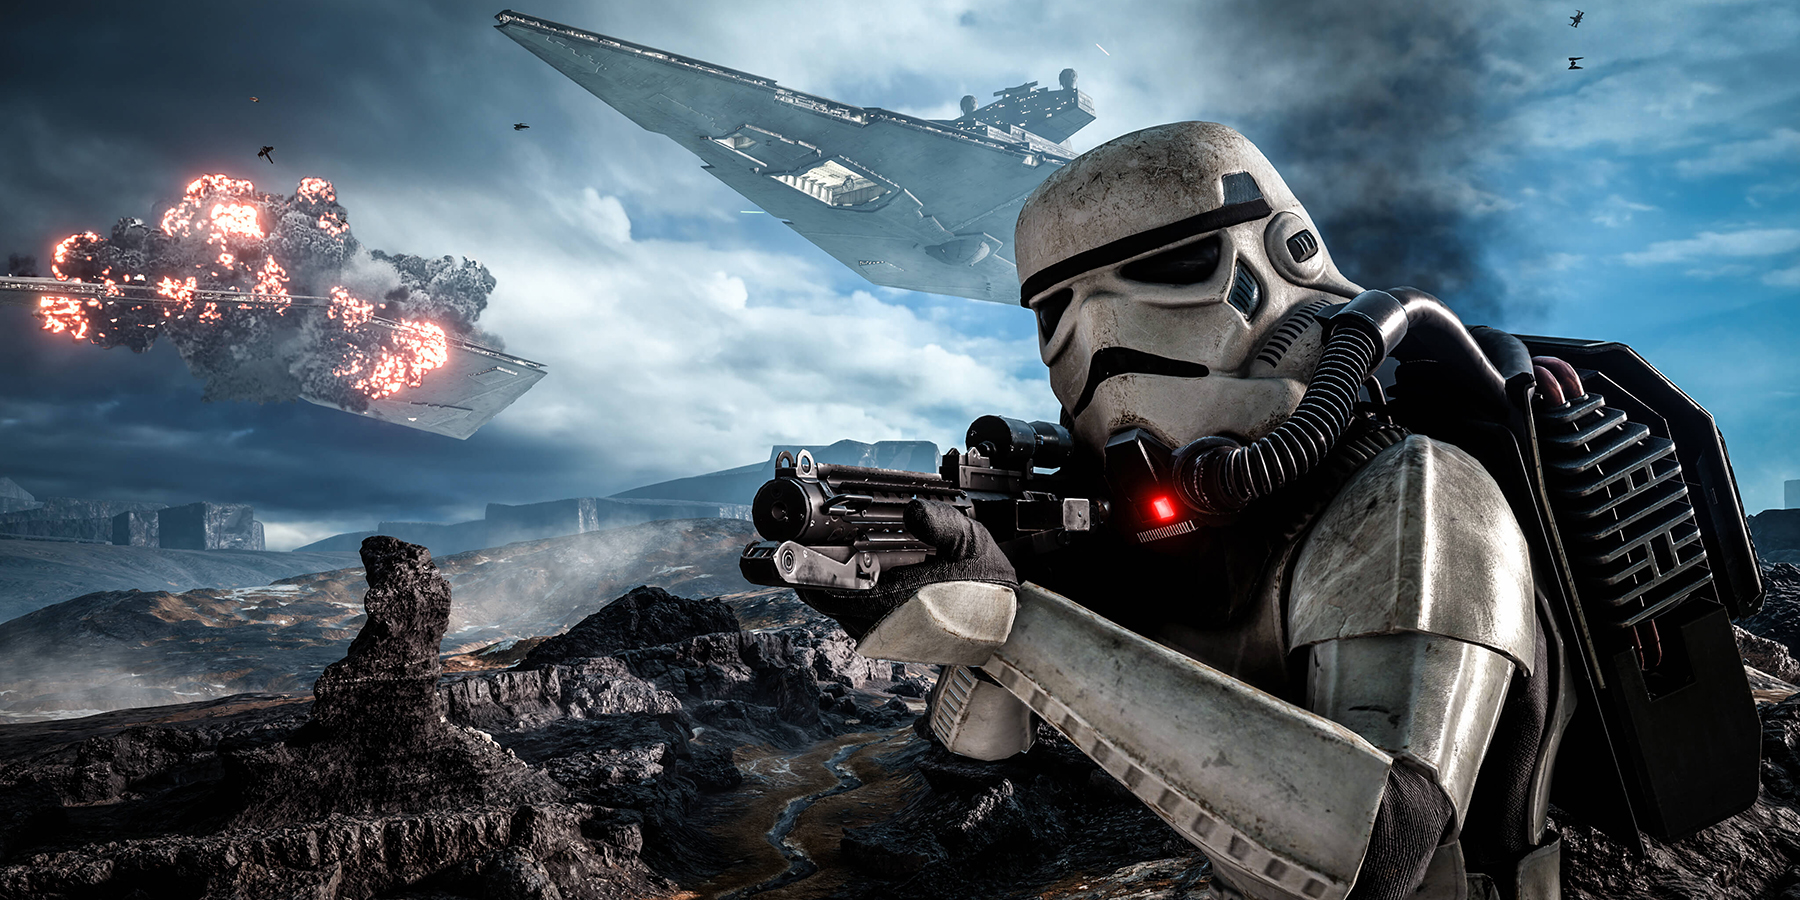 Rumor: Disney Looking to Other Developers for Star Wars Games